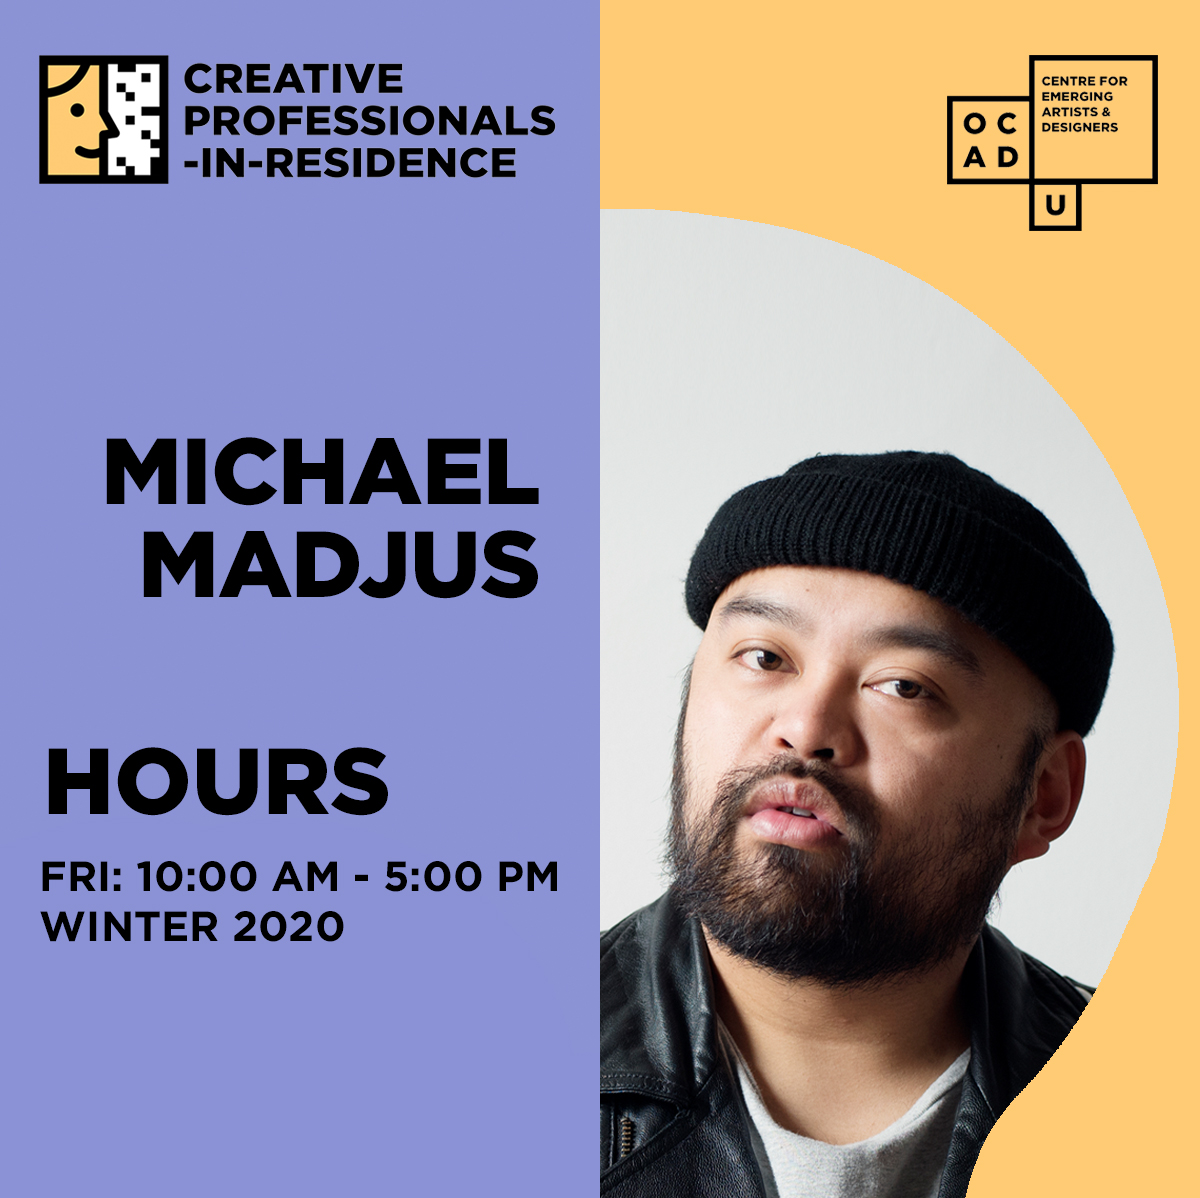 Michael Madjus I | Creative Professional-in-Residence